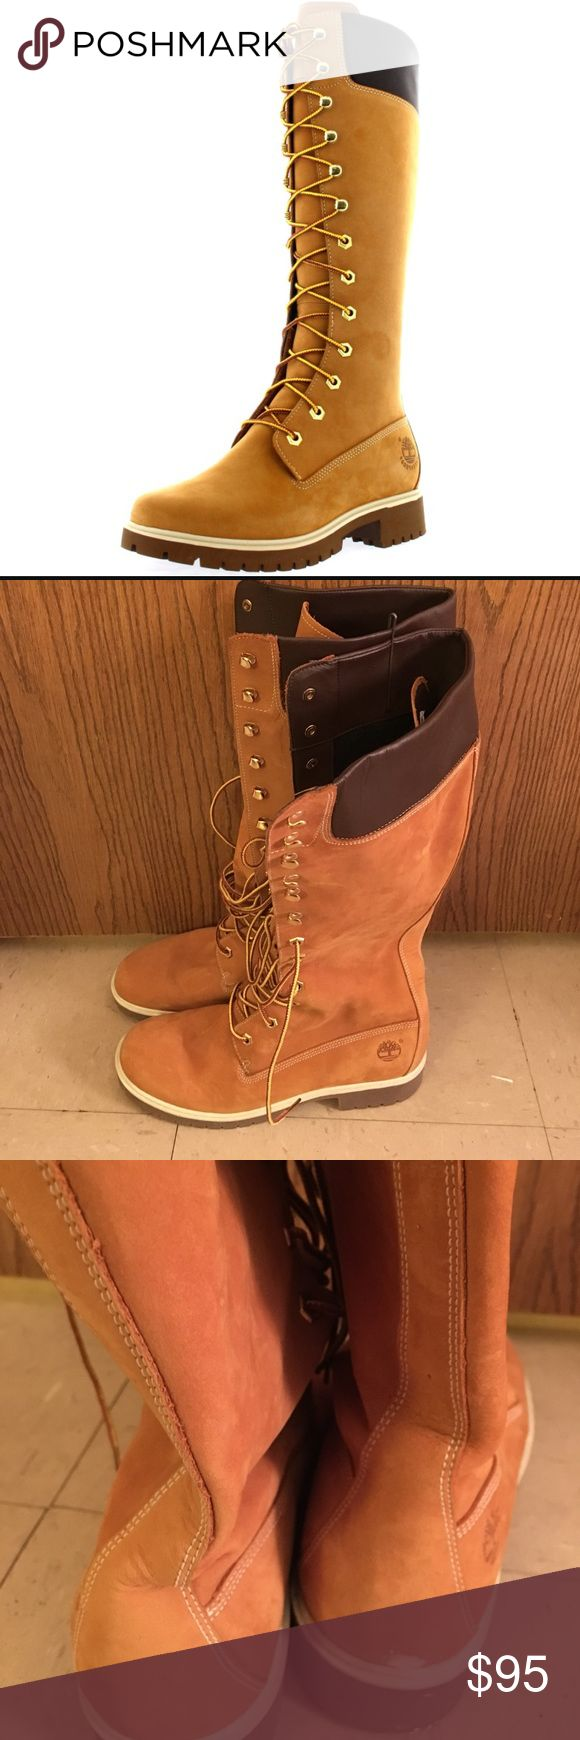 Knee High Timberland Boot Gently used. Like new. Only worn twice. In great condition. There is a tiny damage on the back of the boot. It is a paint stain can easily be removed. Timberland Shoes Winter & Rain Boots